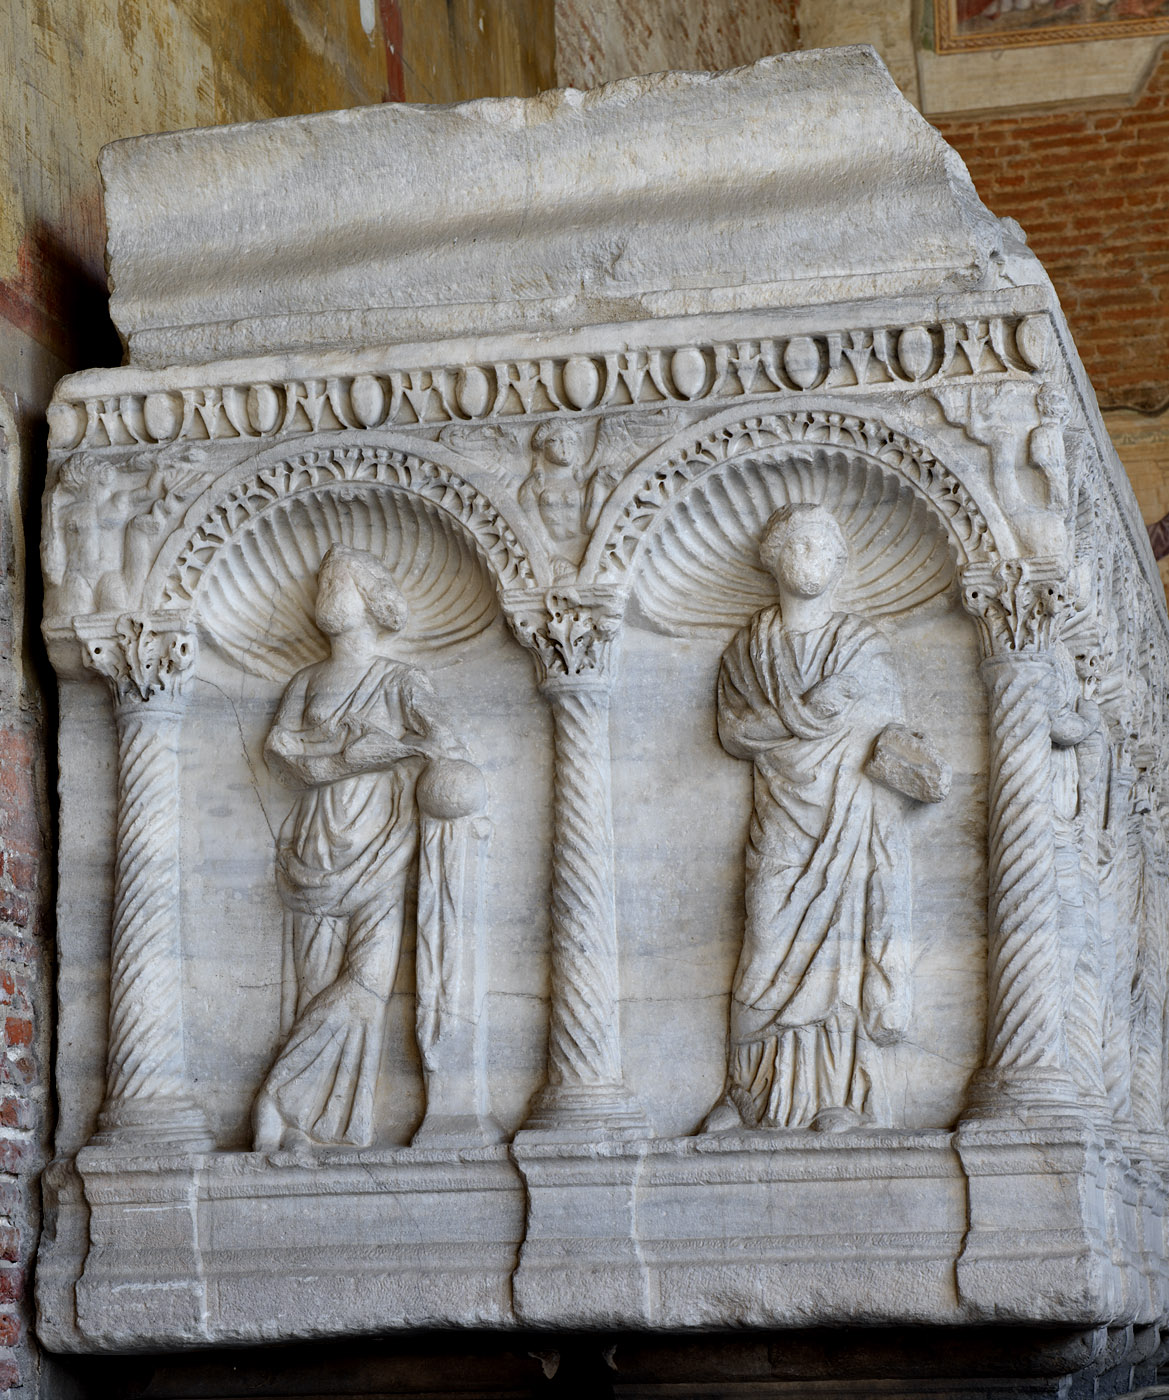 Sarcophagus with representation of the dead married couple and the Muses in arches (left short side panel). Marble. Rome. Ca. 250 CE. Inv. No. С 22 est. Pisa, Camposanto Monumentale